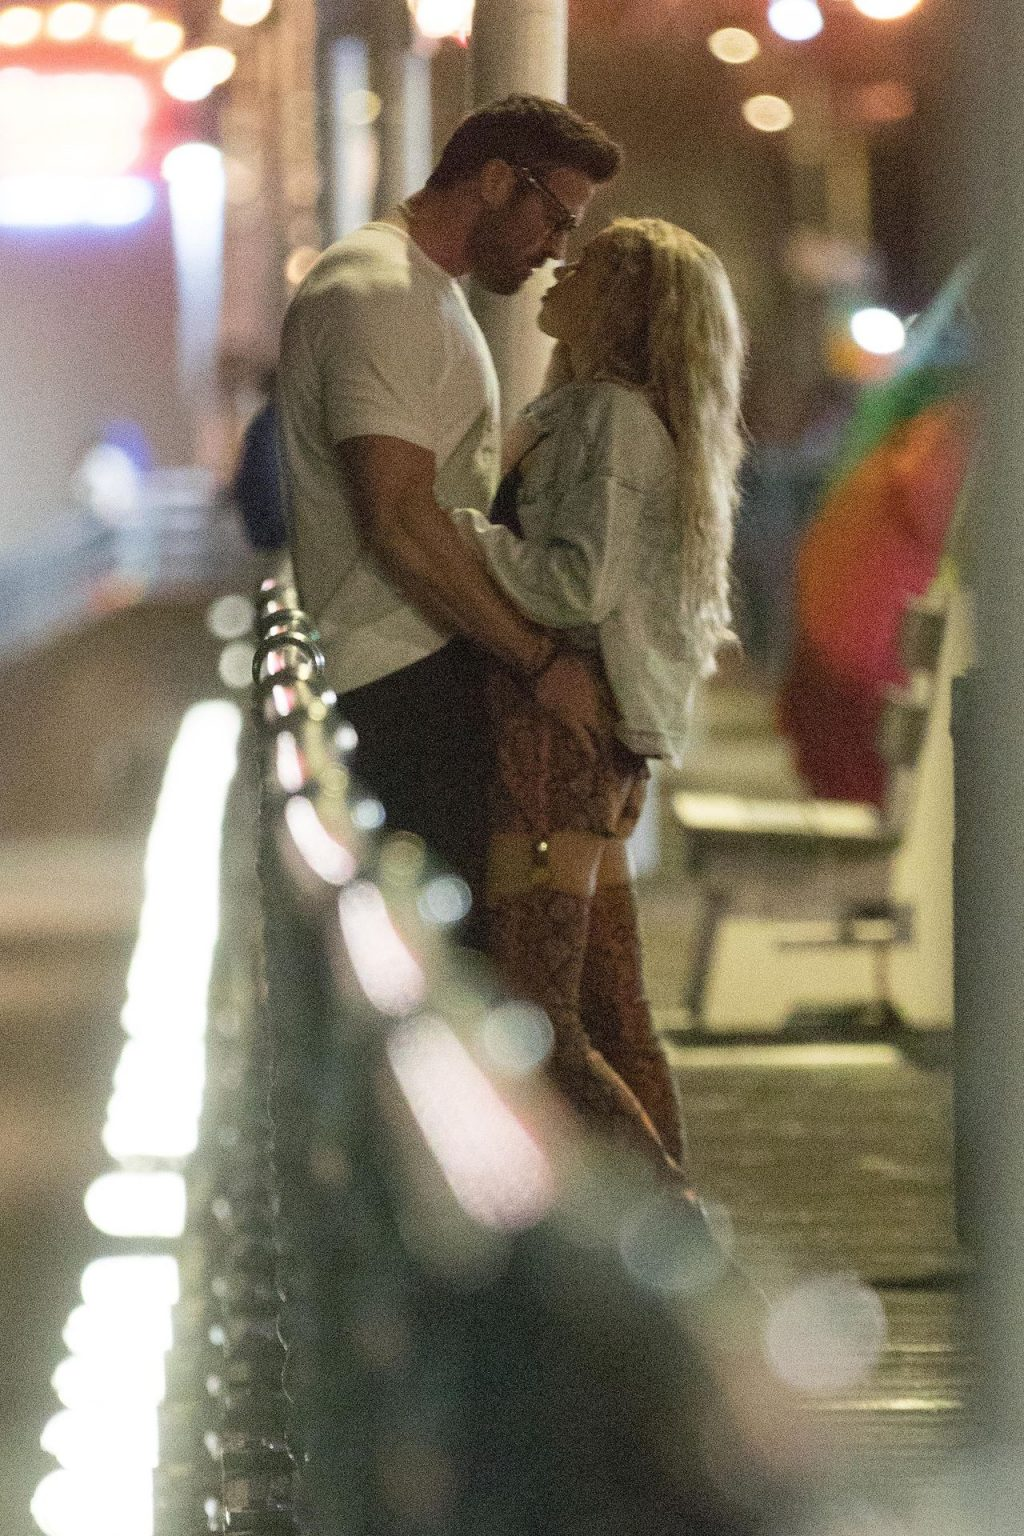 Chad Johnson & Annalise Mishler are Seen On a Low Key Date at the Santa Monica Pier (27 Photos)